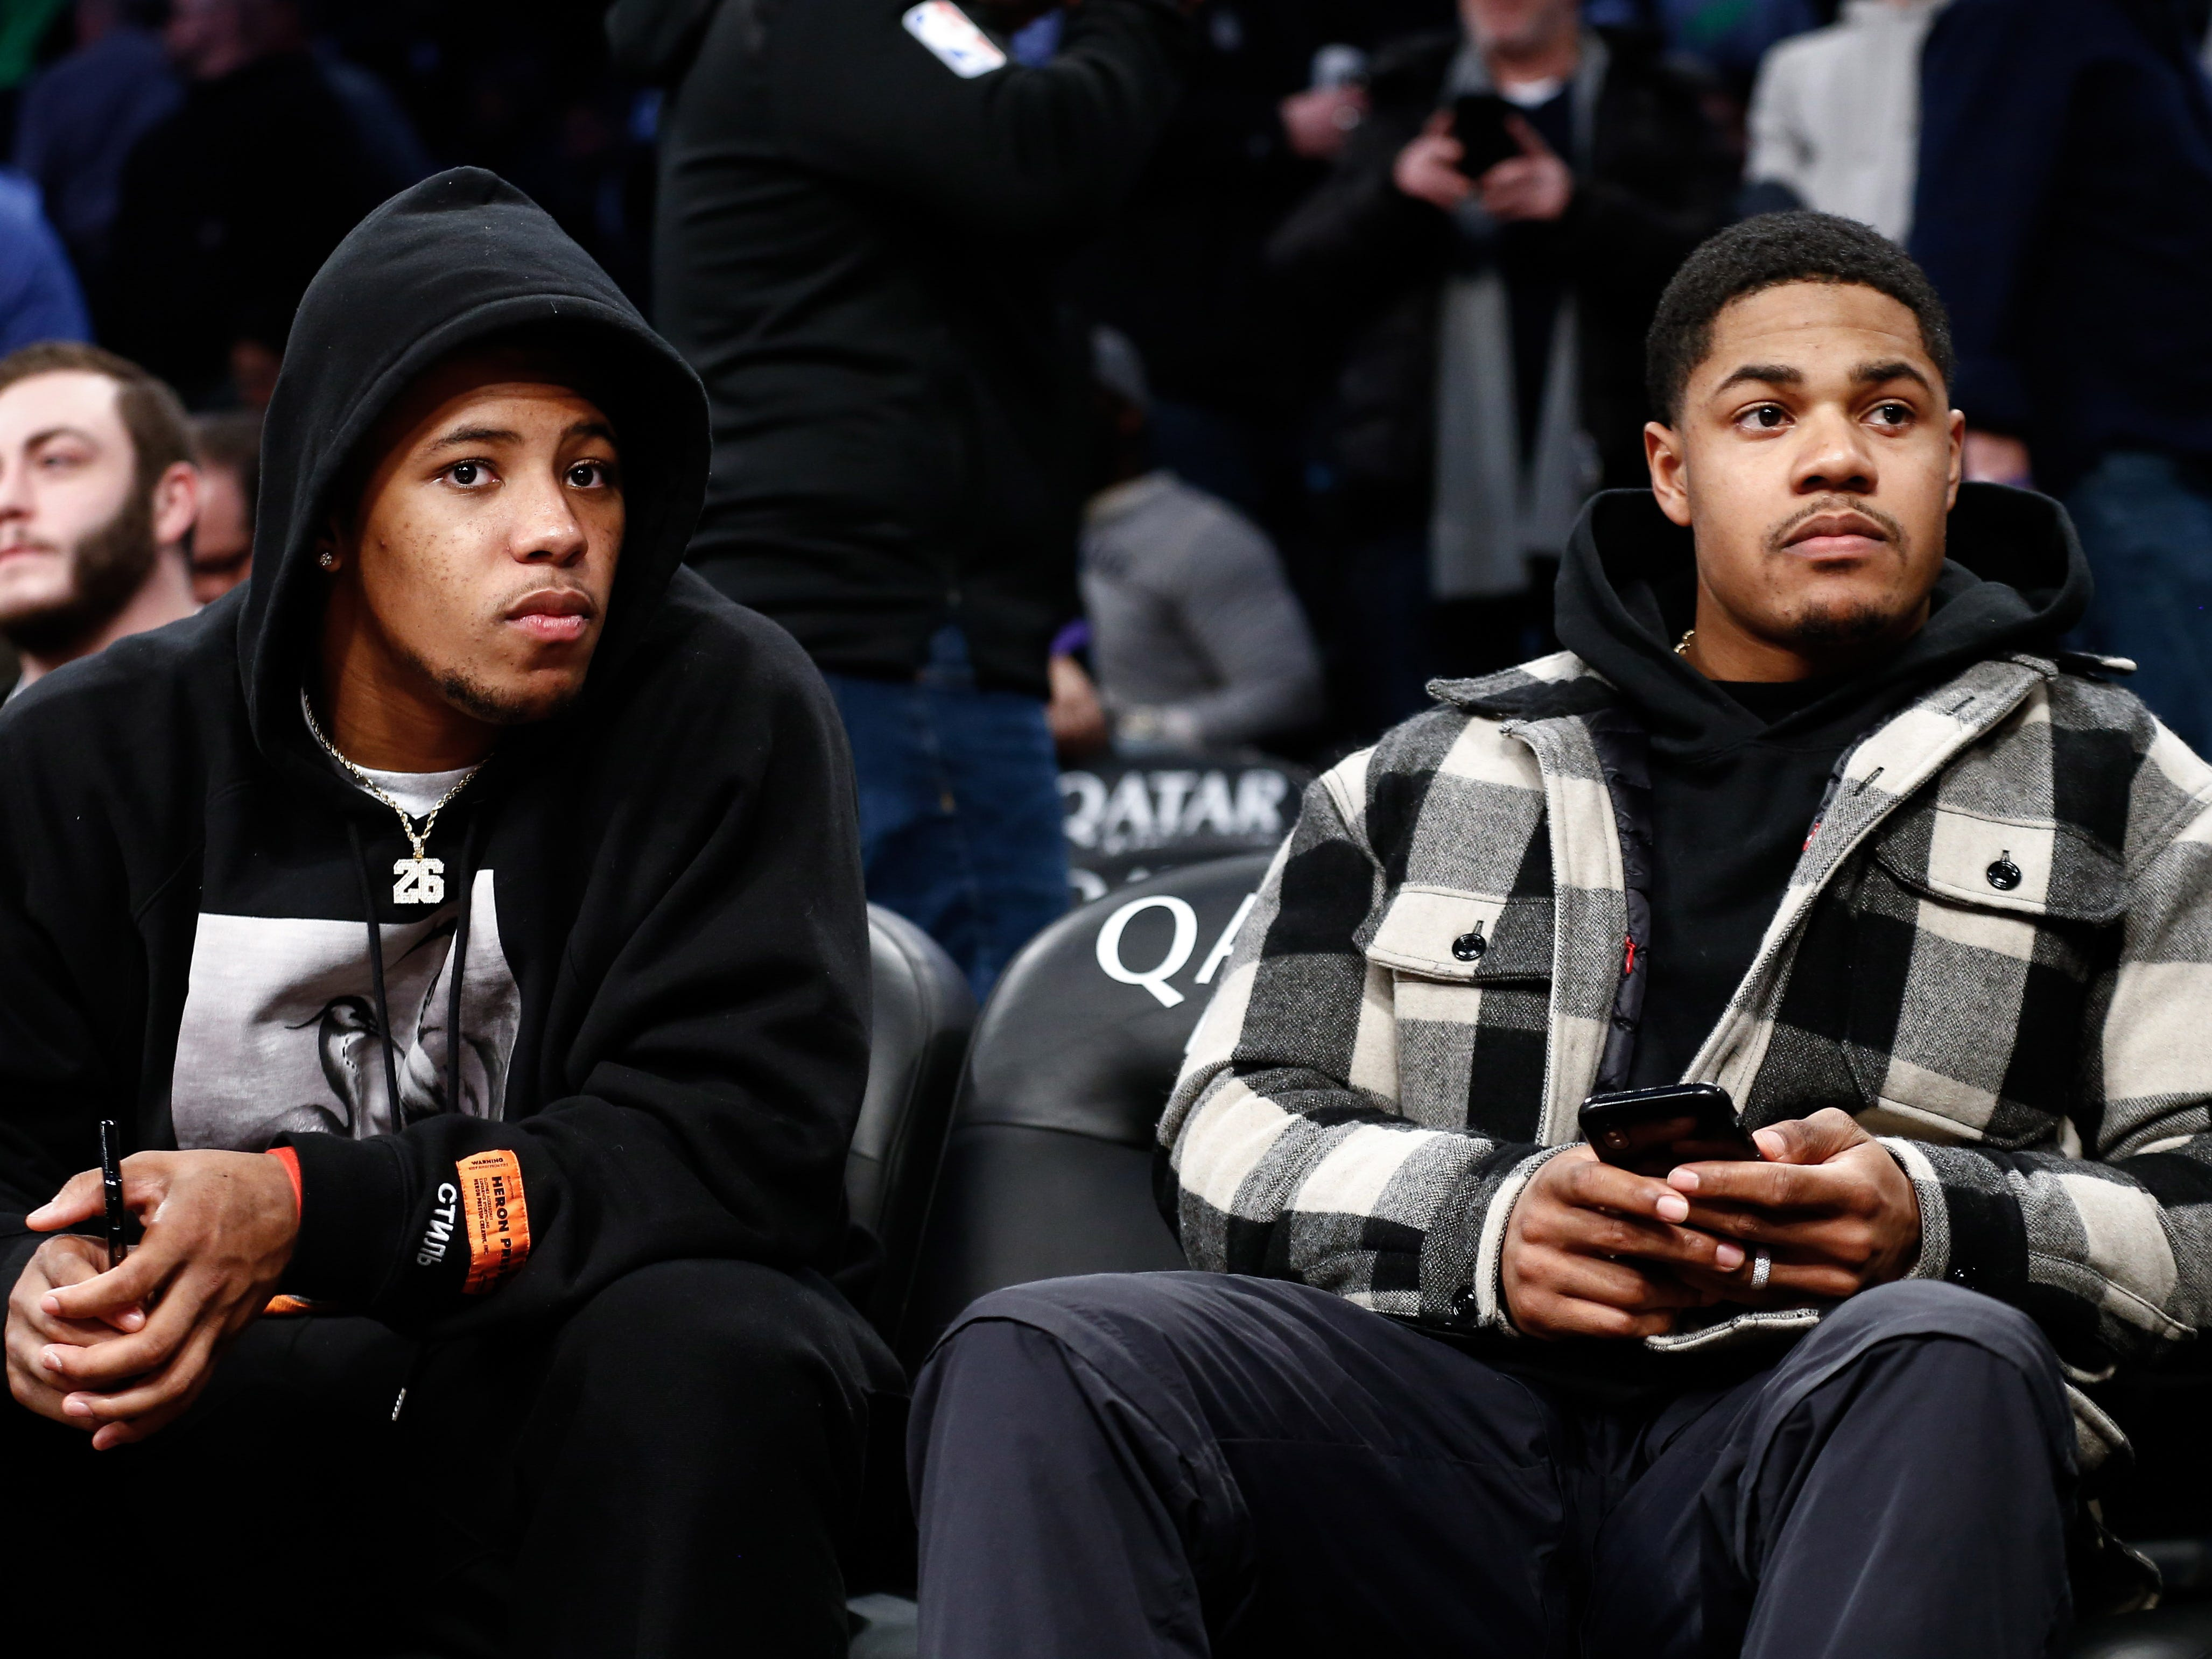 Jan. 21: New York Giants players Saquon Barkley and Sterling Shepard sit courtside at the Nets-Kings game at Barclays Center.